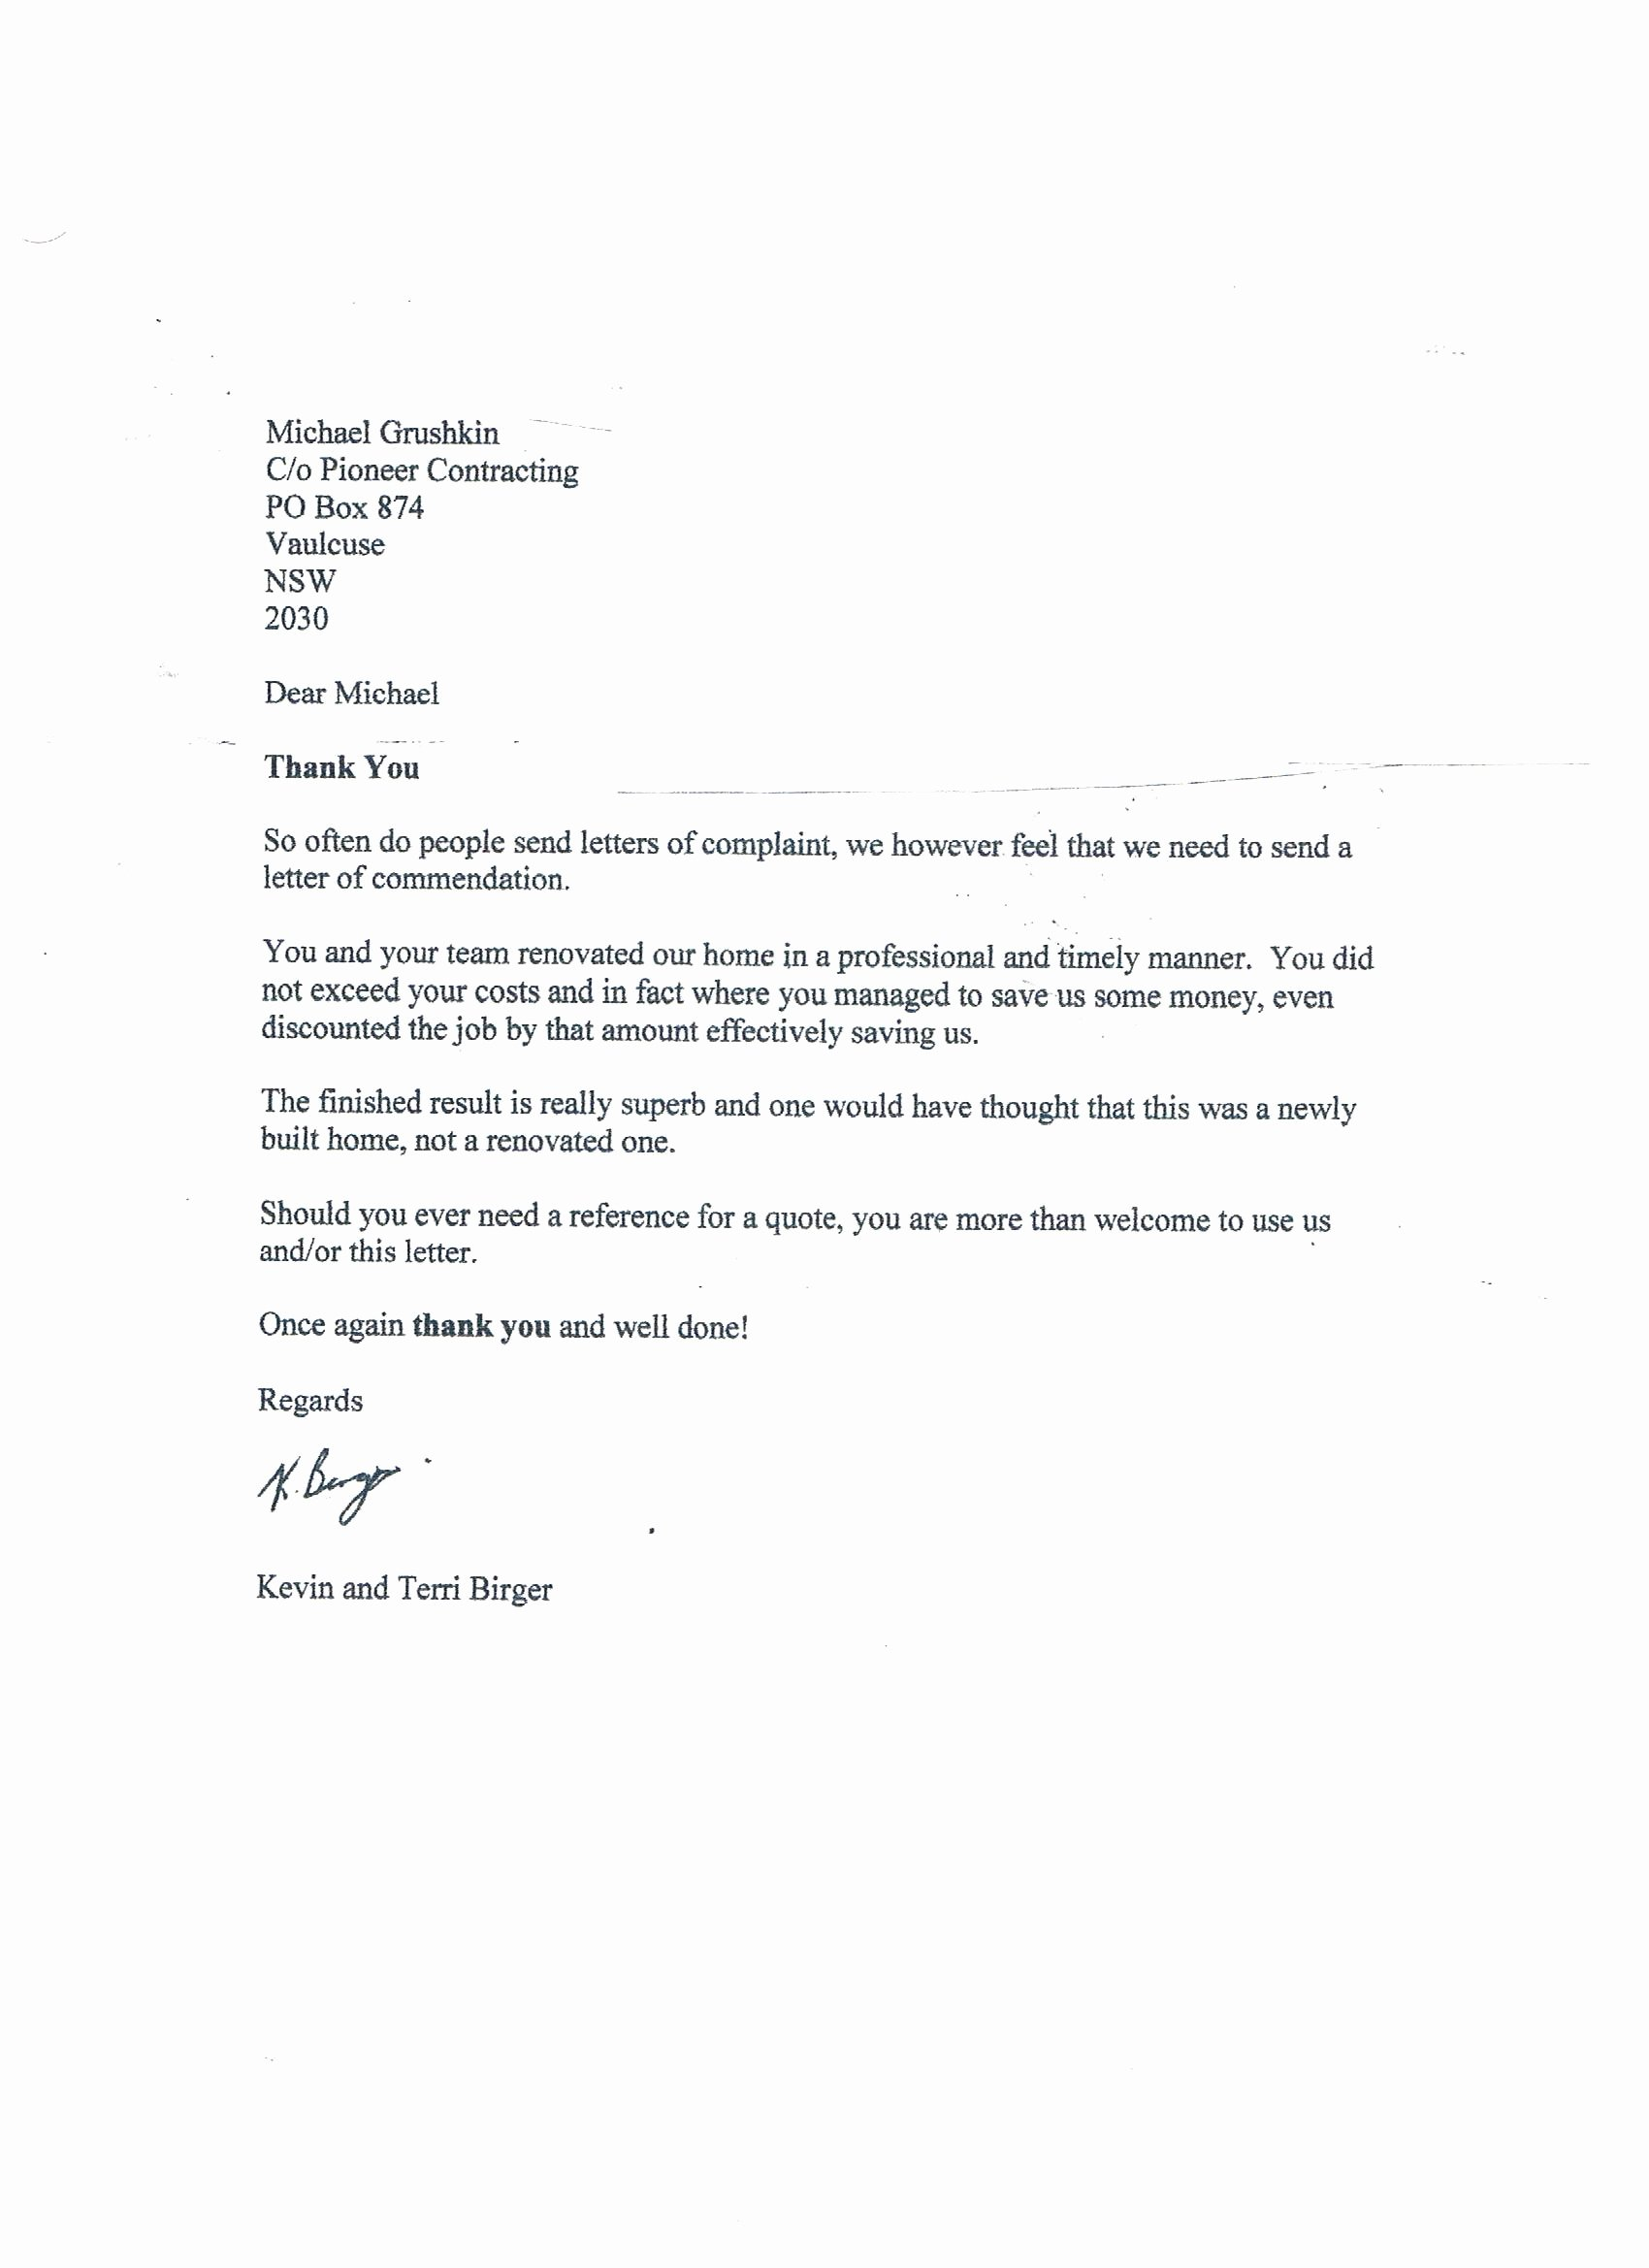 Letter Of Recommendation for Contractor New Pioneer Contracting